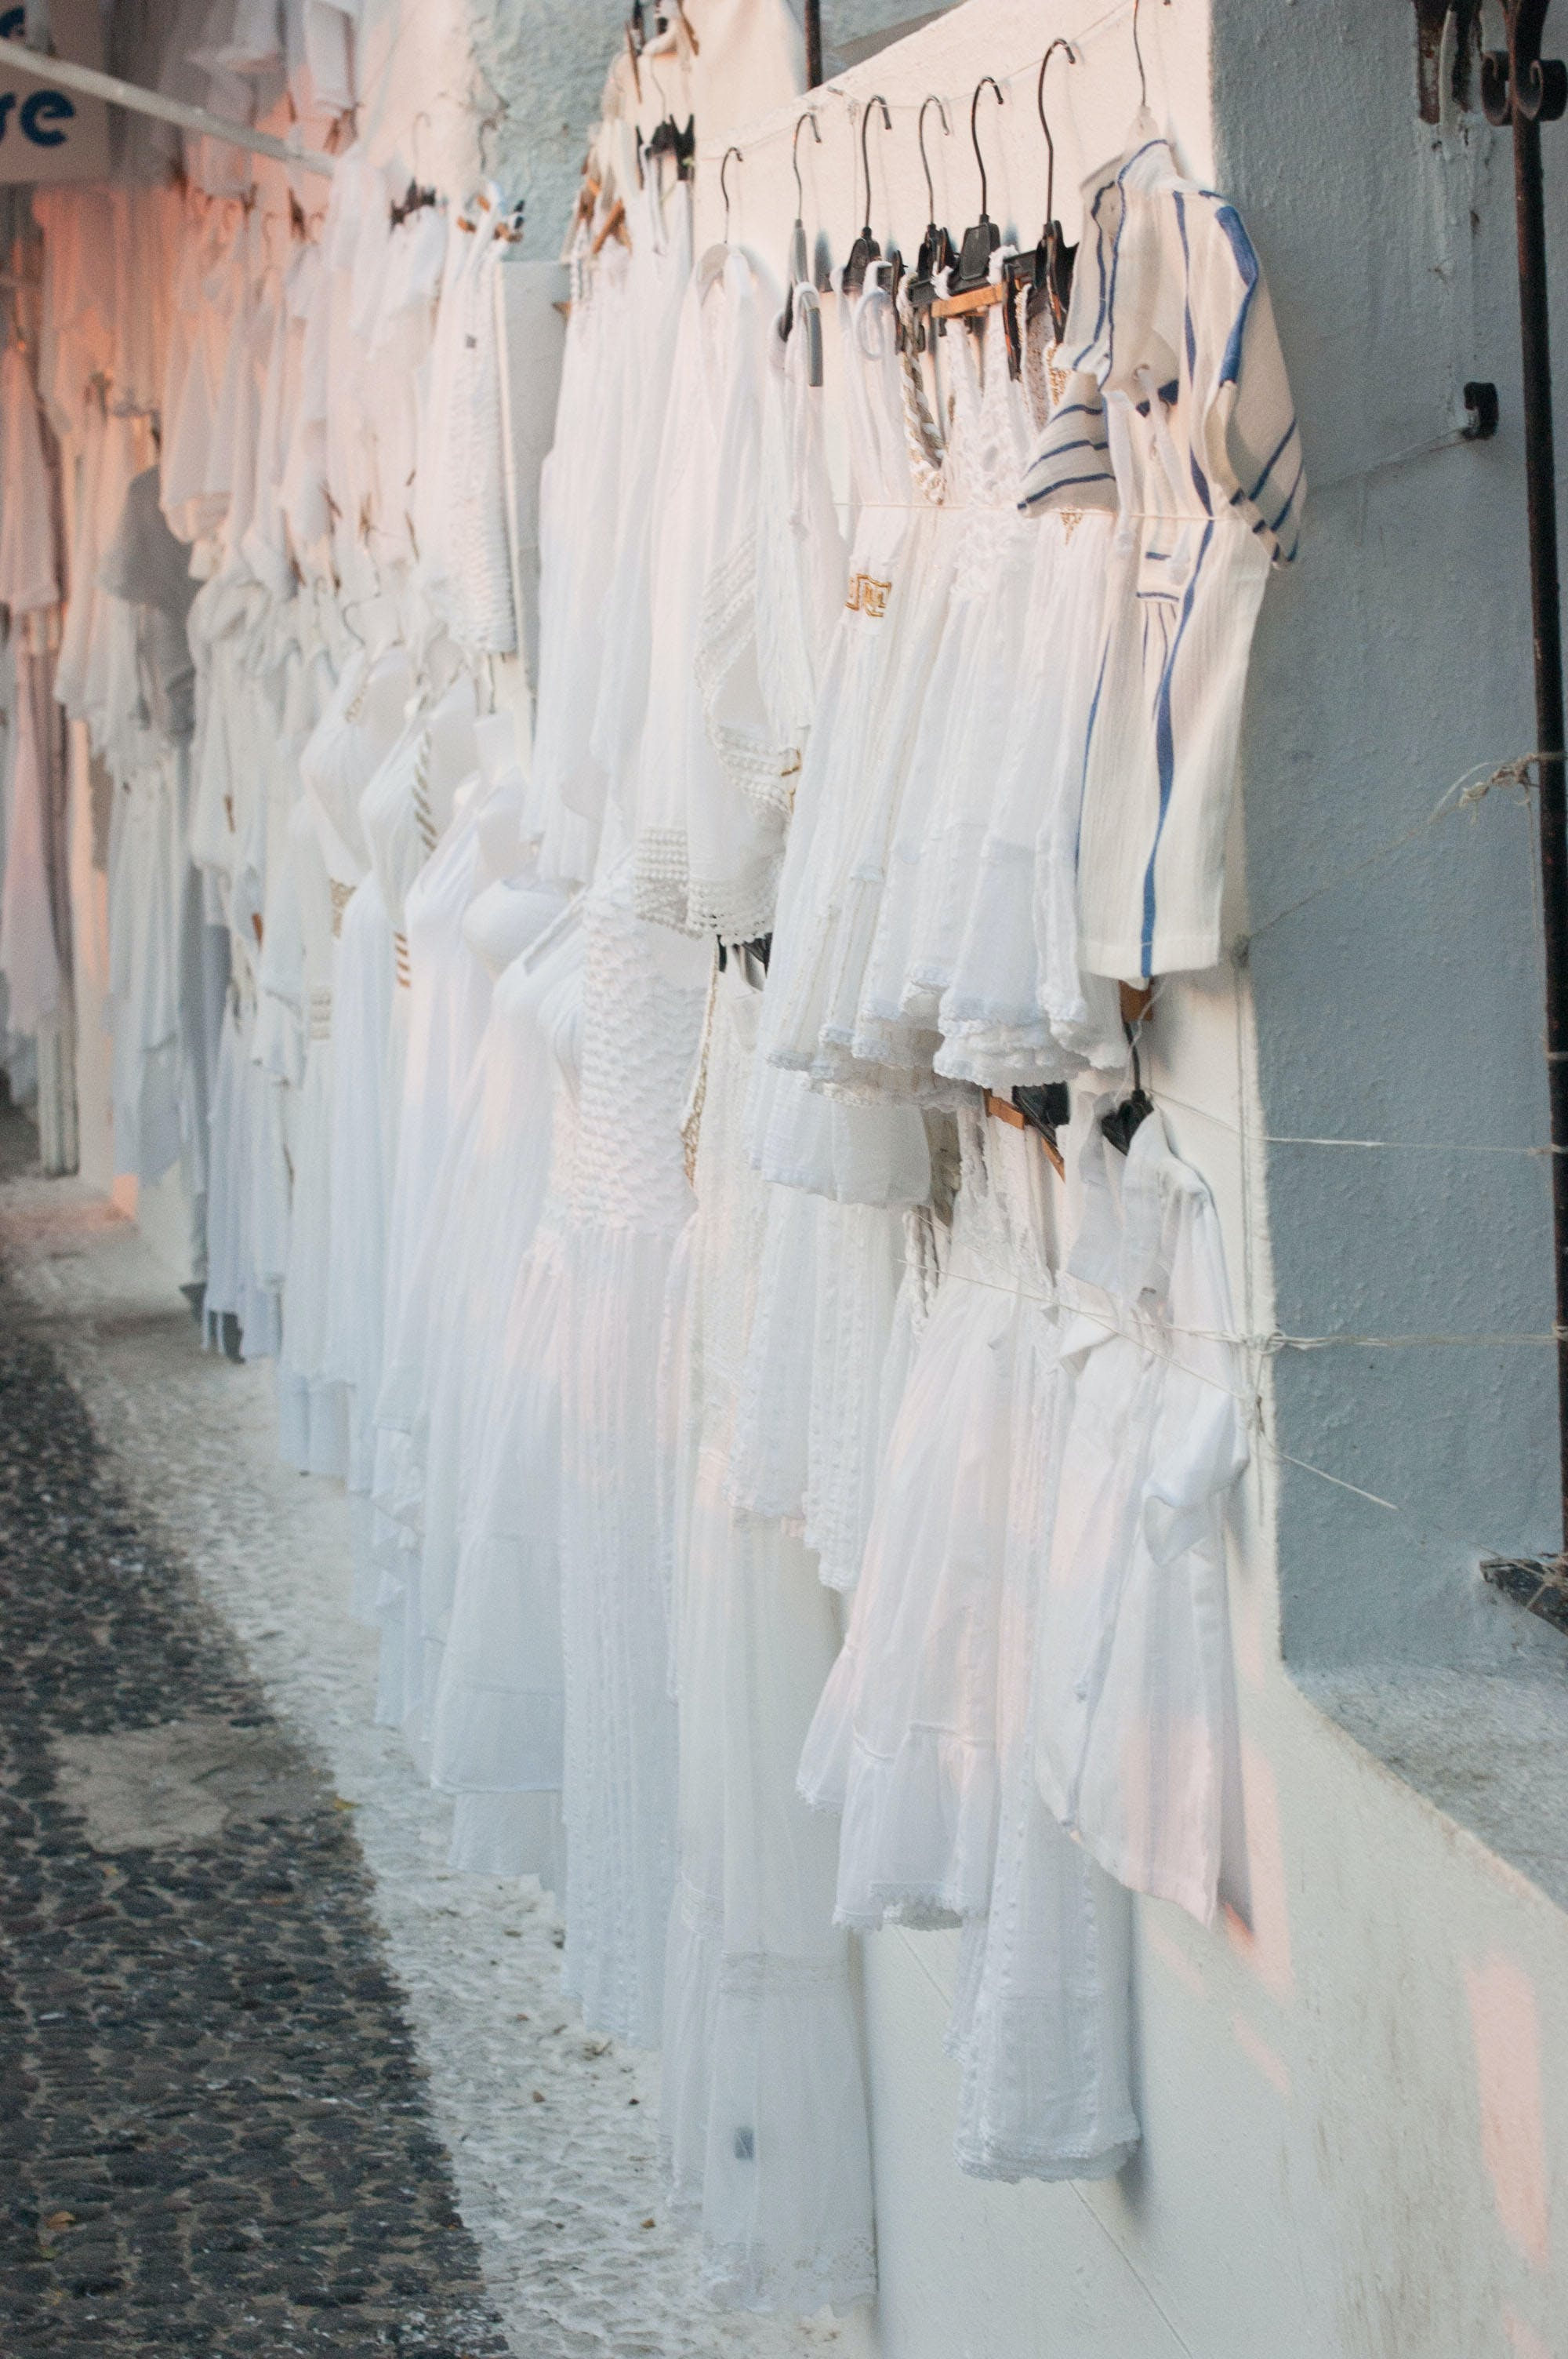 Assorted Dresses Hanged on White Painted Wall